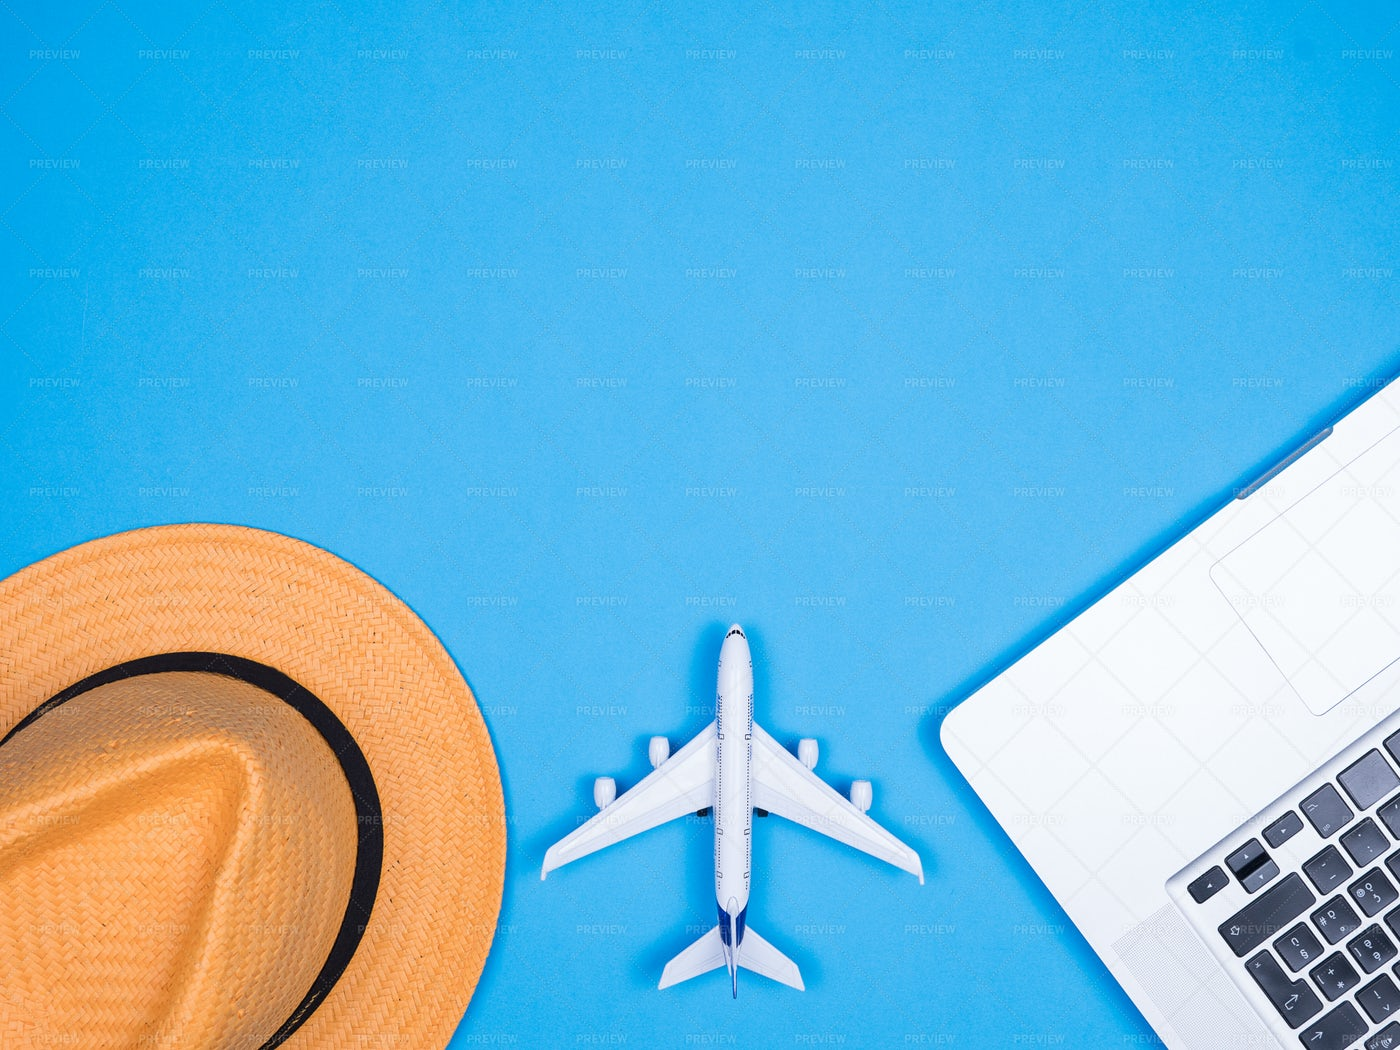 Booking Travel Flights Background: Stock Photos